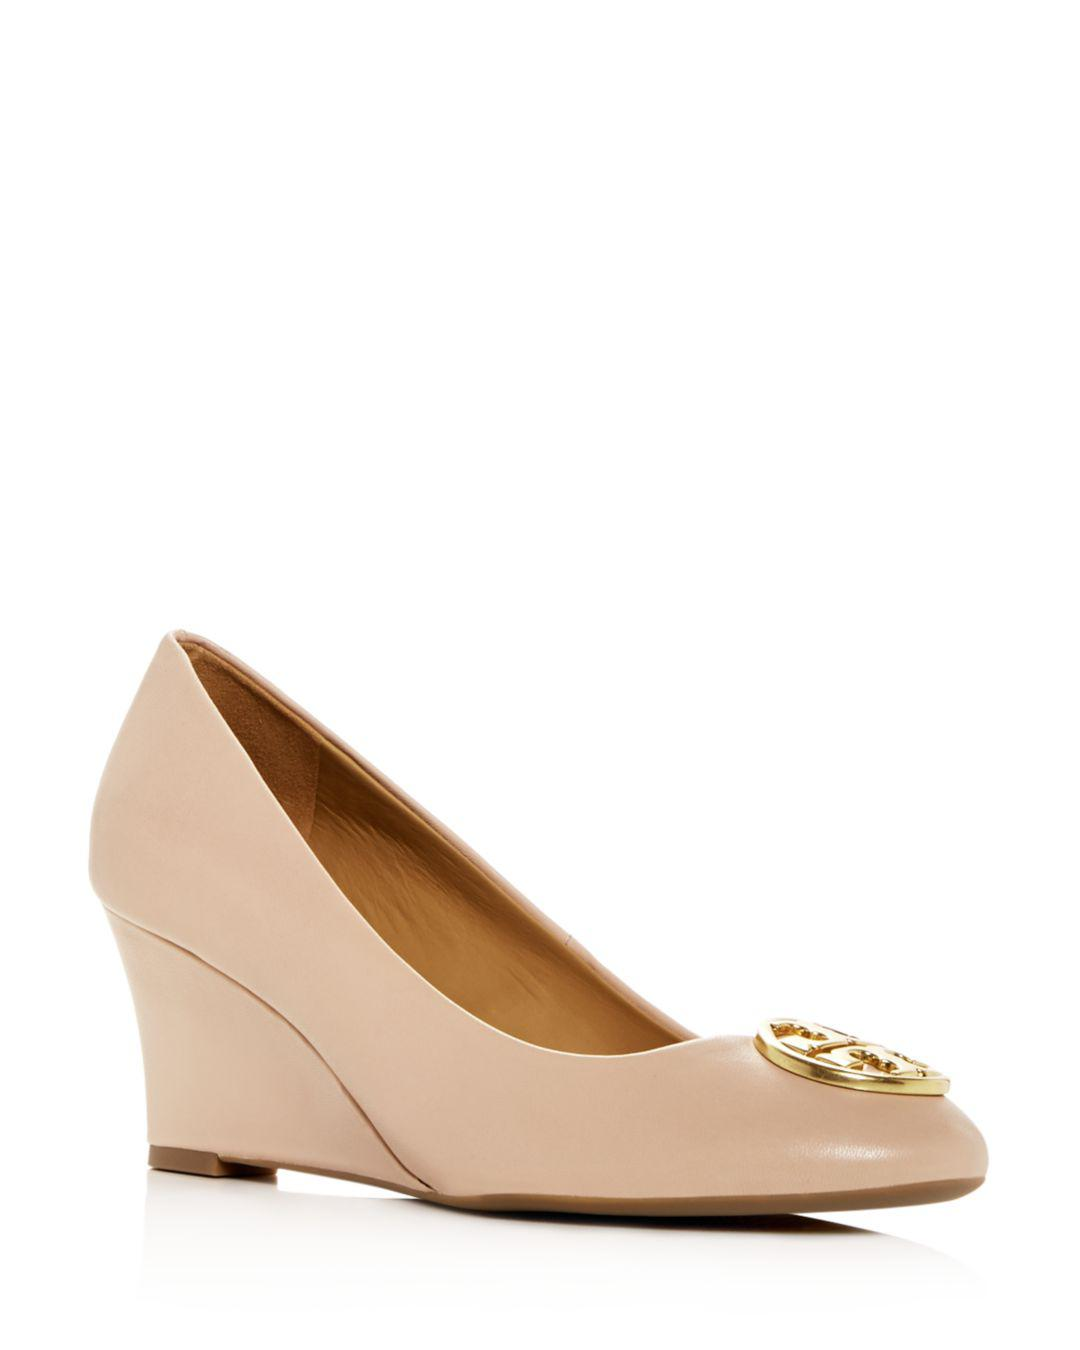 593178e874f02a Tory Burch Women s Chelsea Wedge Pumps in Natural - Lyst